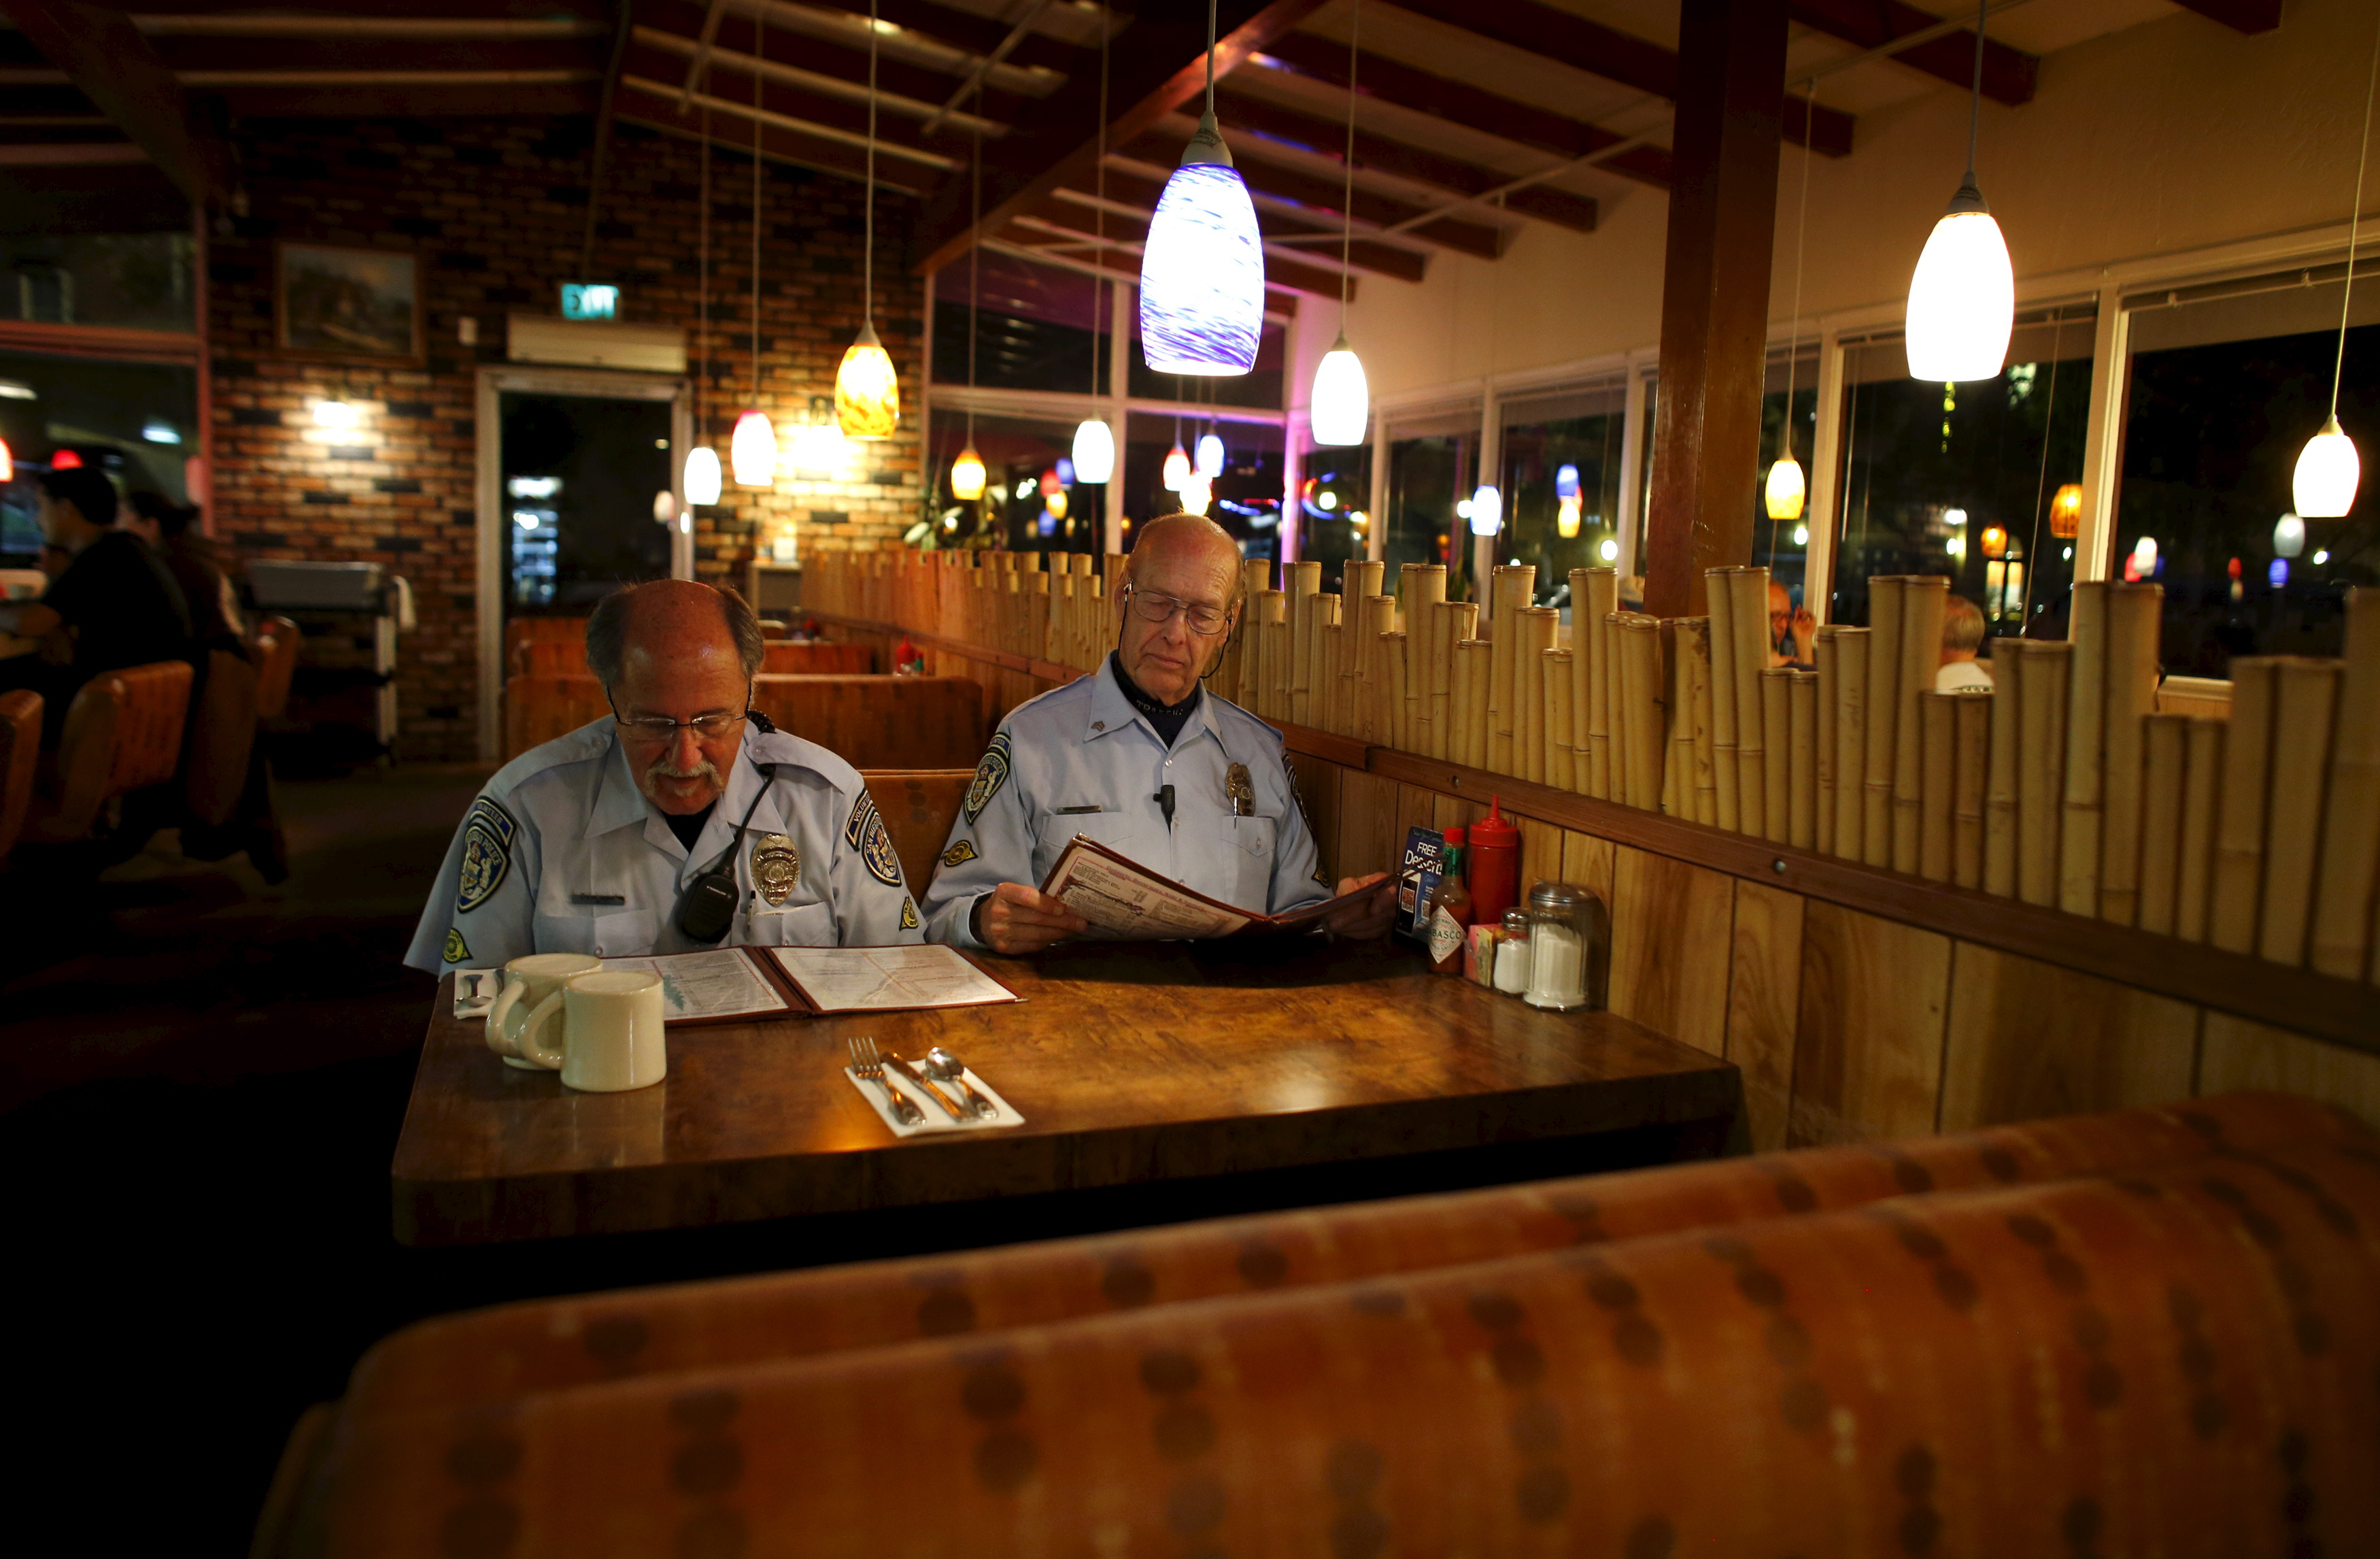 Retired Senior Volunteer Patrol member Steve Rubin (L) and Henry Miller grab a late meal at a restaurant while out on patrol, March 10, 2015. Photo by Mike Blake/Reuters